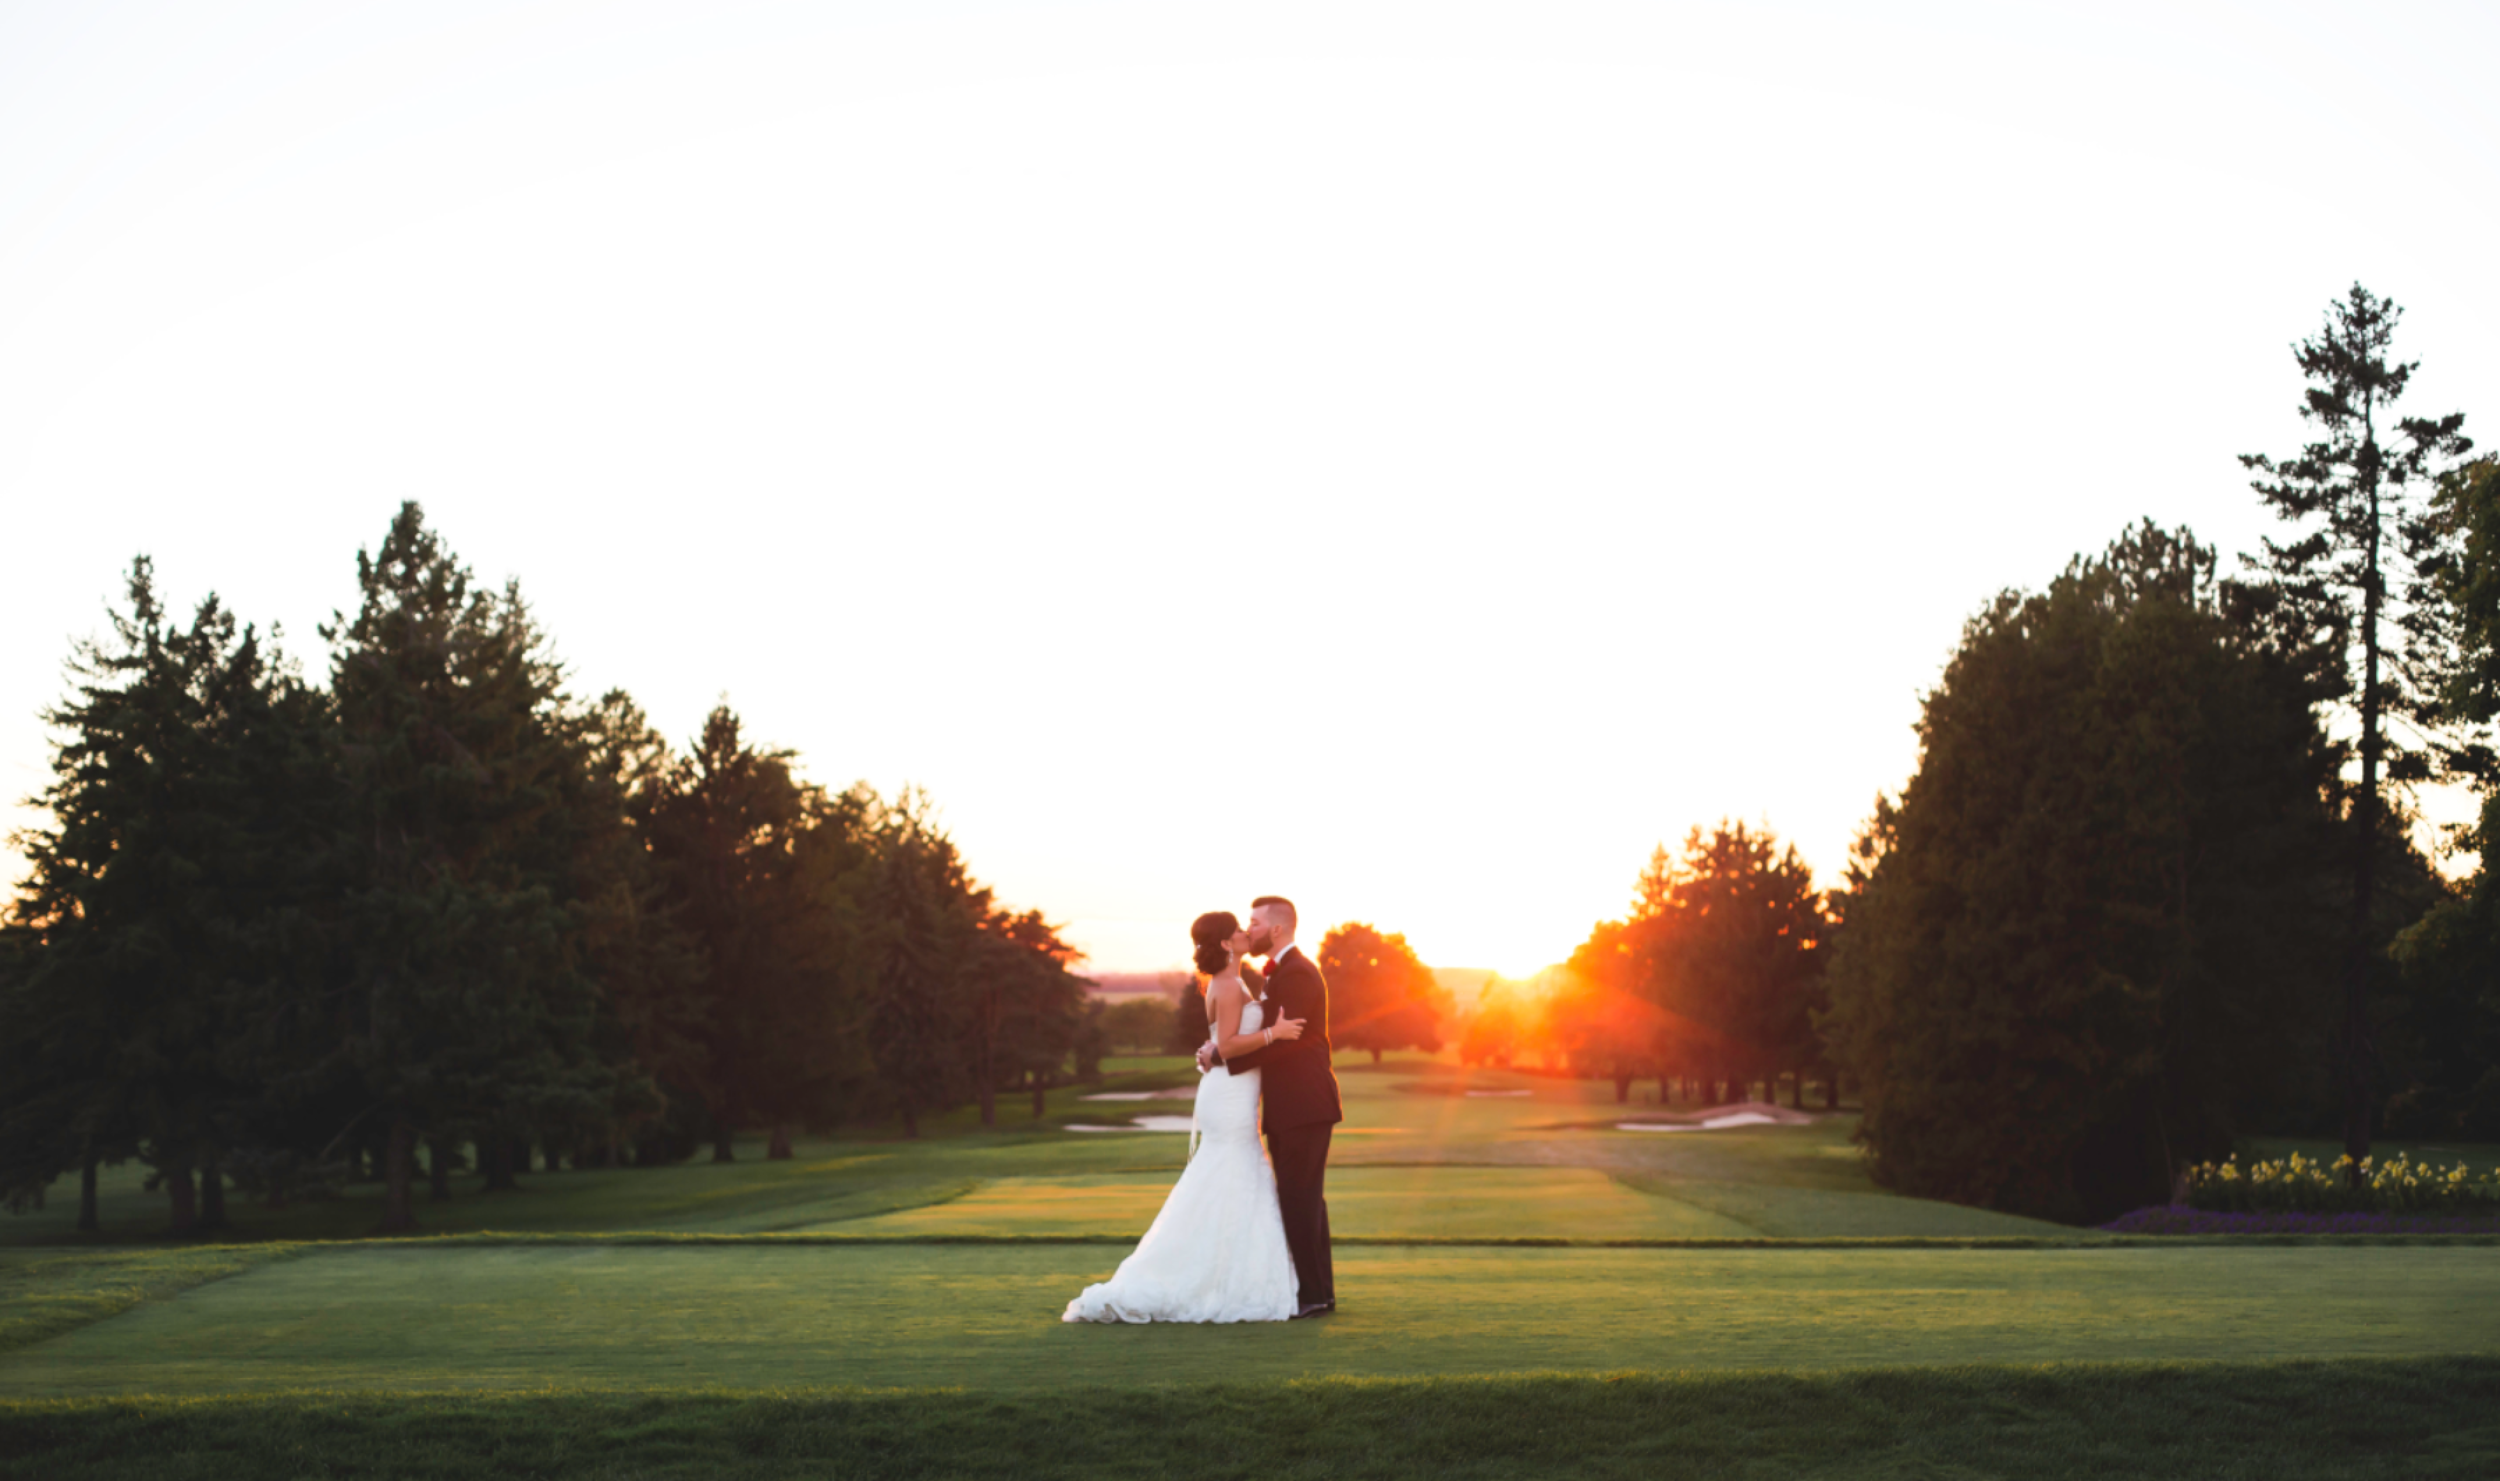 Wedding-Photography-Hamilton-Burlington-Oakville-Toronto-Niagara-Photographer-Moments-by-Lauren-Sunset-Golden-Hour-Photos-HamOnt-Beverly-Golf-And-Country-Club-Golf-Course-Bride-Groom-Image-2.png